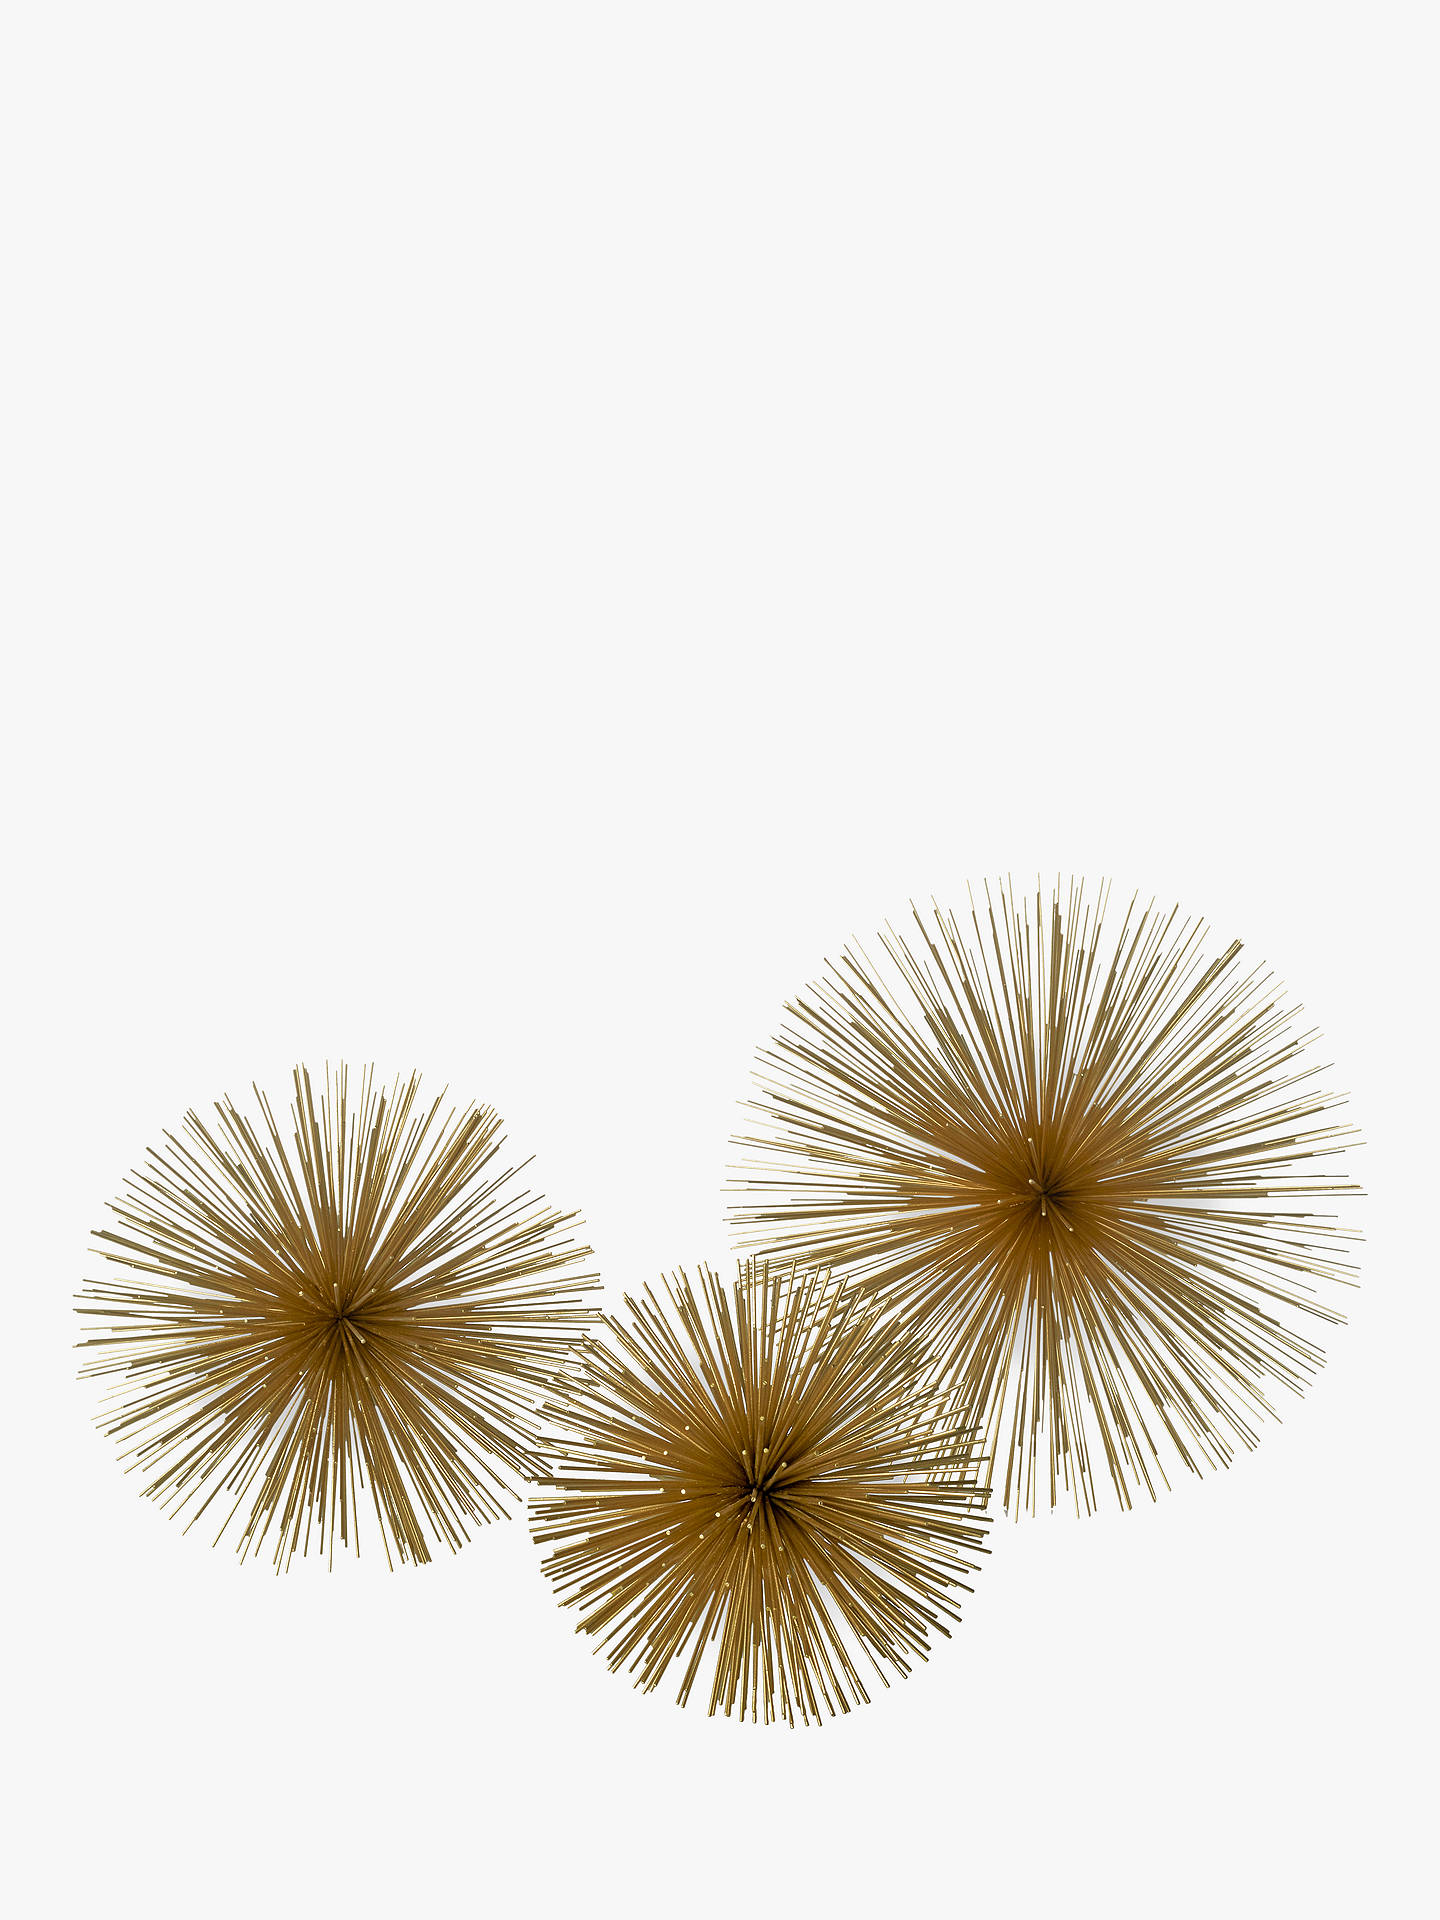 Buy Pols Potten Brass Prickle Decorative Ornament, Small Online at johnlewis.com